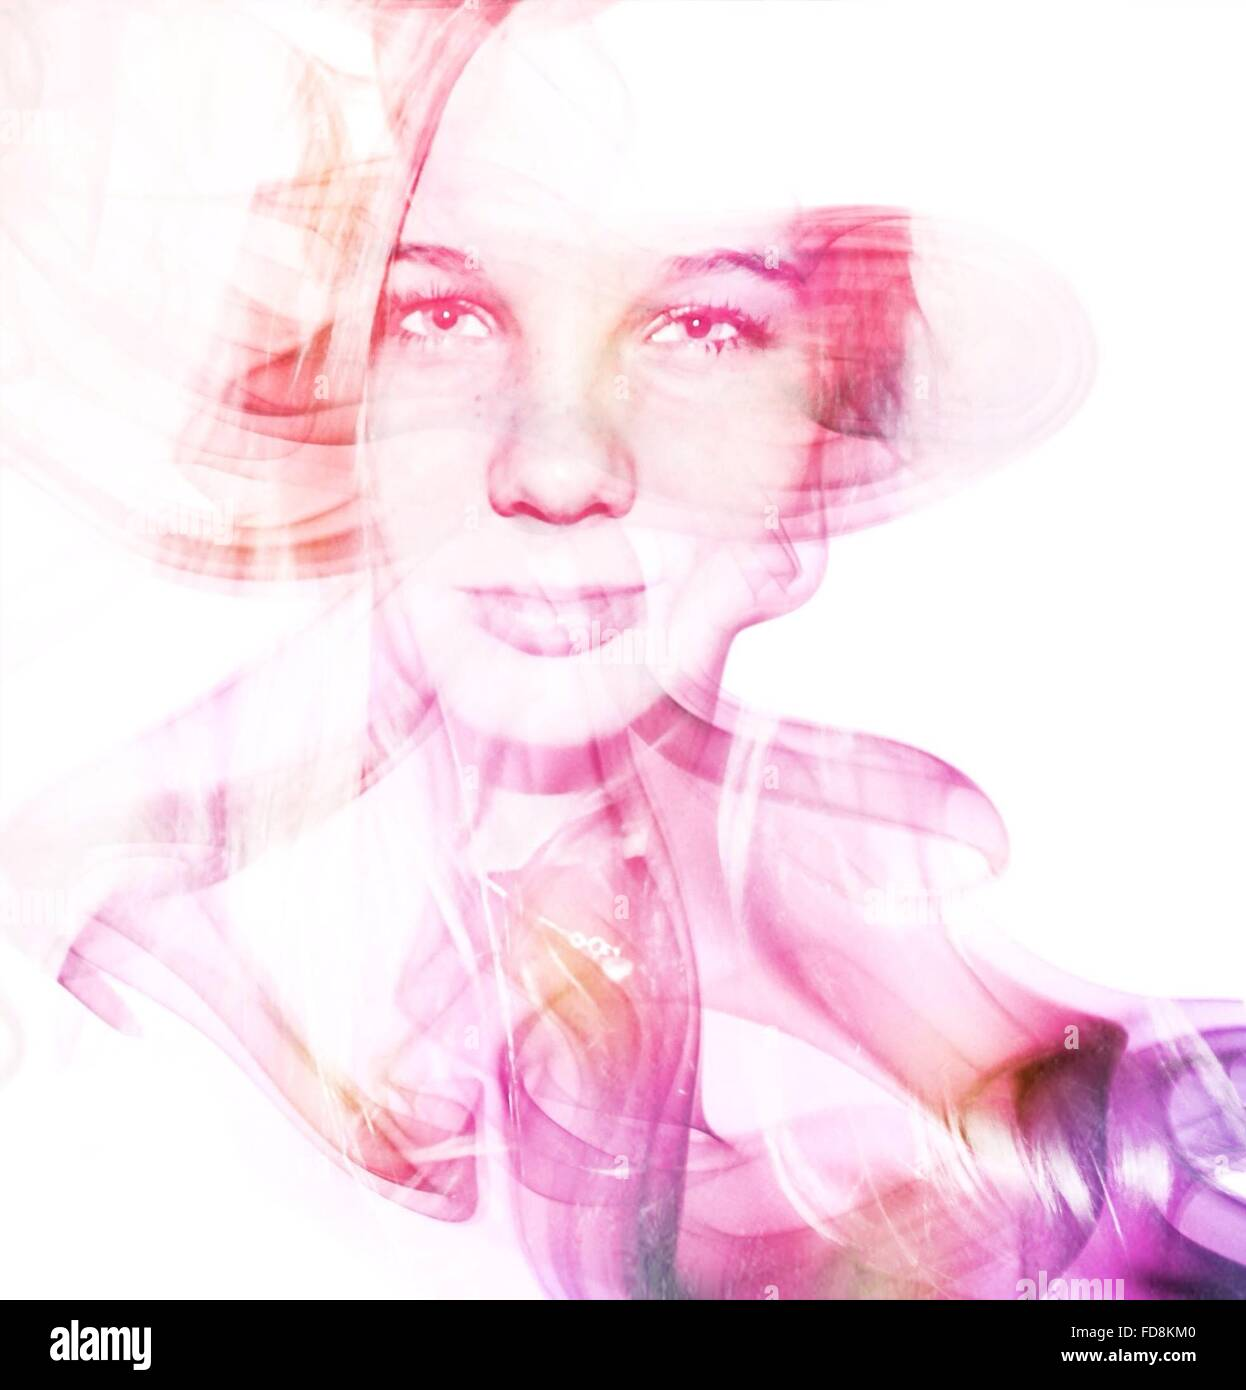 Digital Composite Of Woman - Stock Image